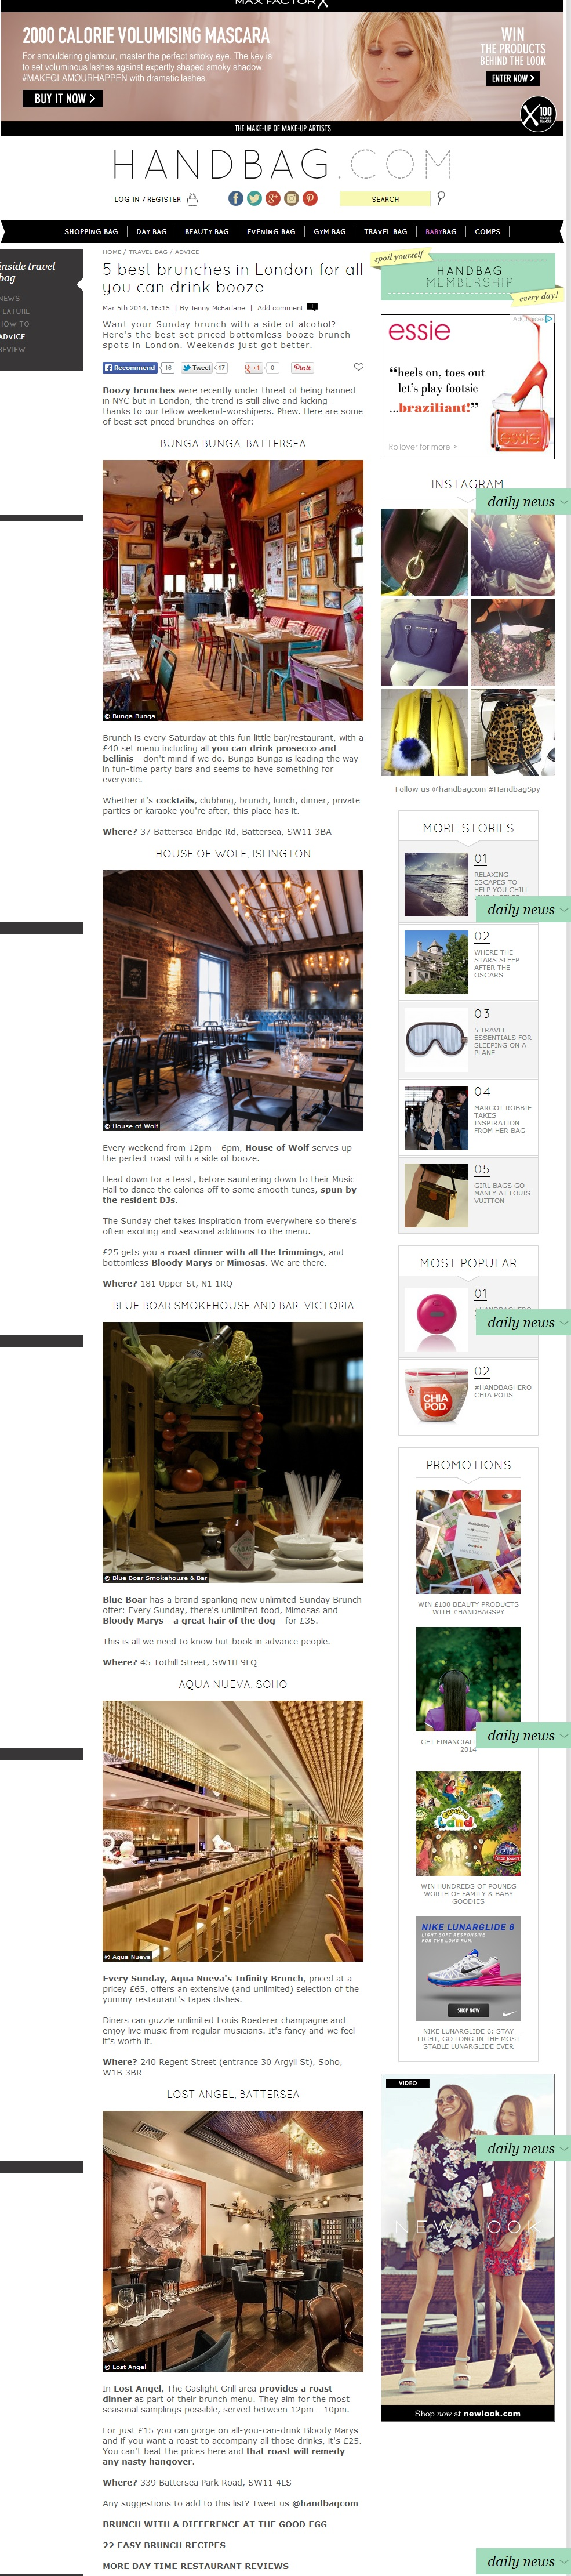 screencapture-www-handbag-com-travel-bag-advice-a554663-5-best-brunches-in-london-for-all-you-can-drink-booze-html